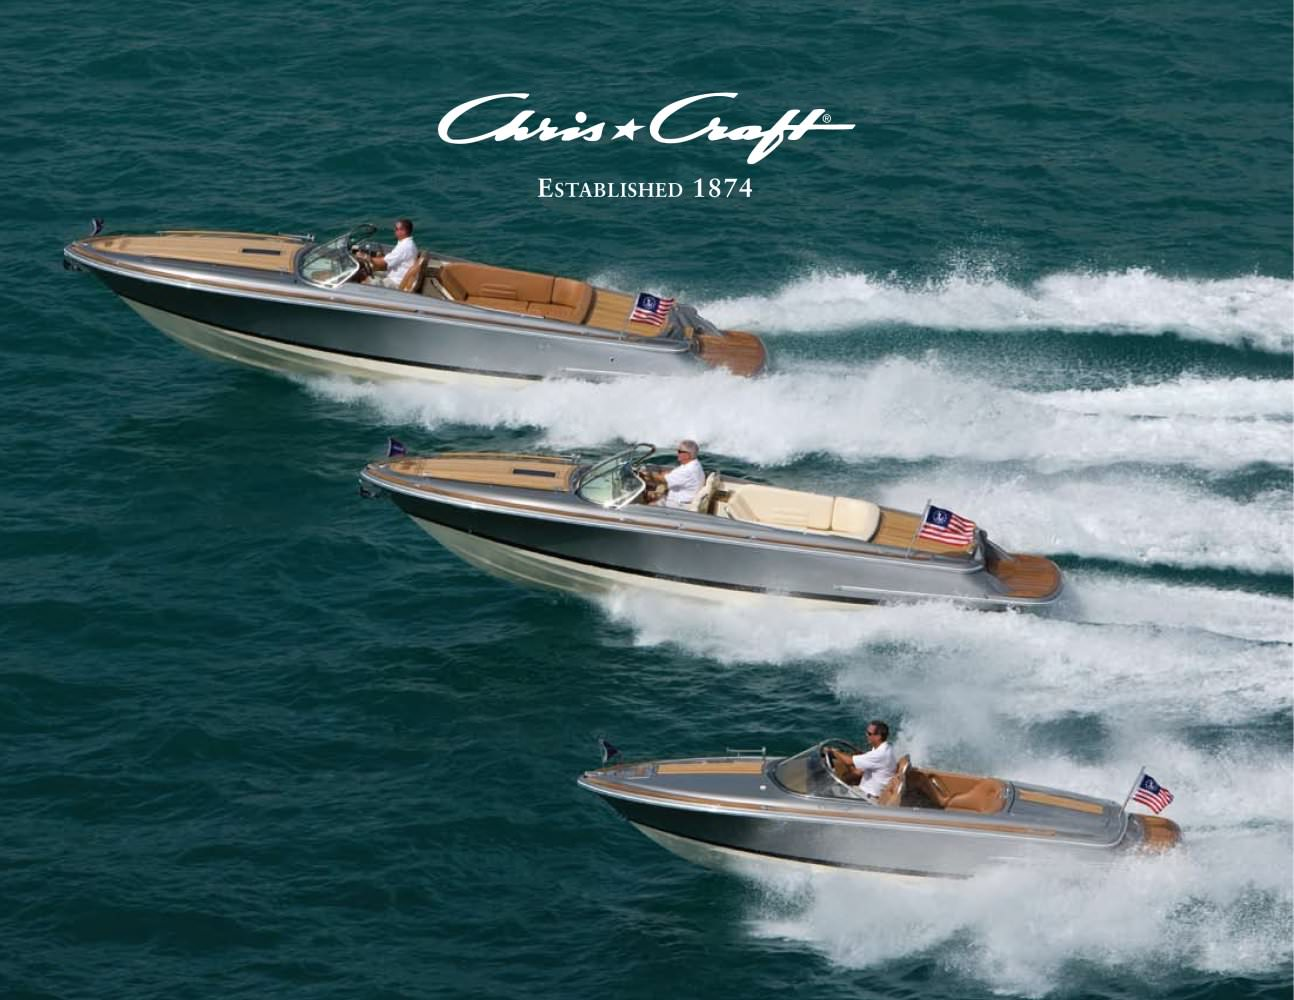 CHRIS-CRAFT FULL LINE CATALOGUE 2011 - Chris Craft